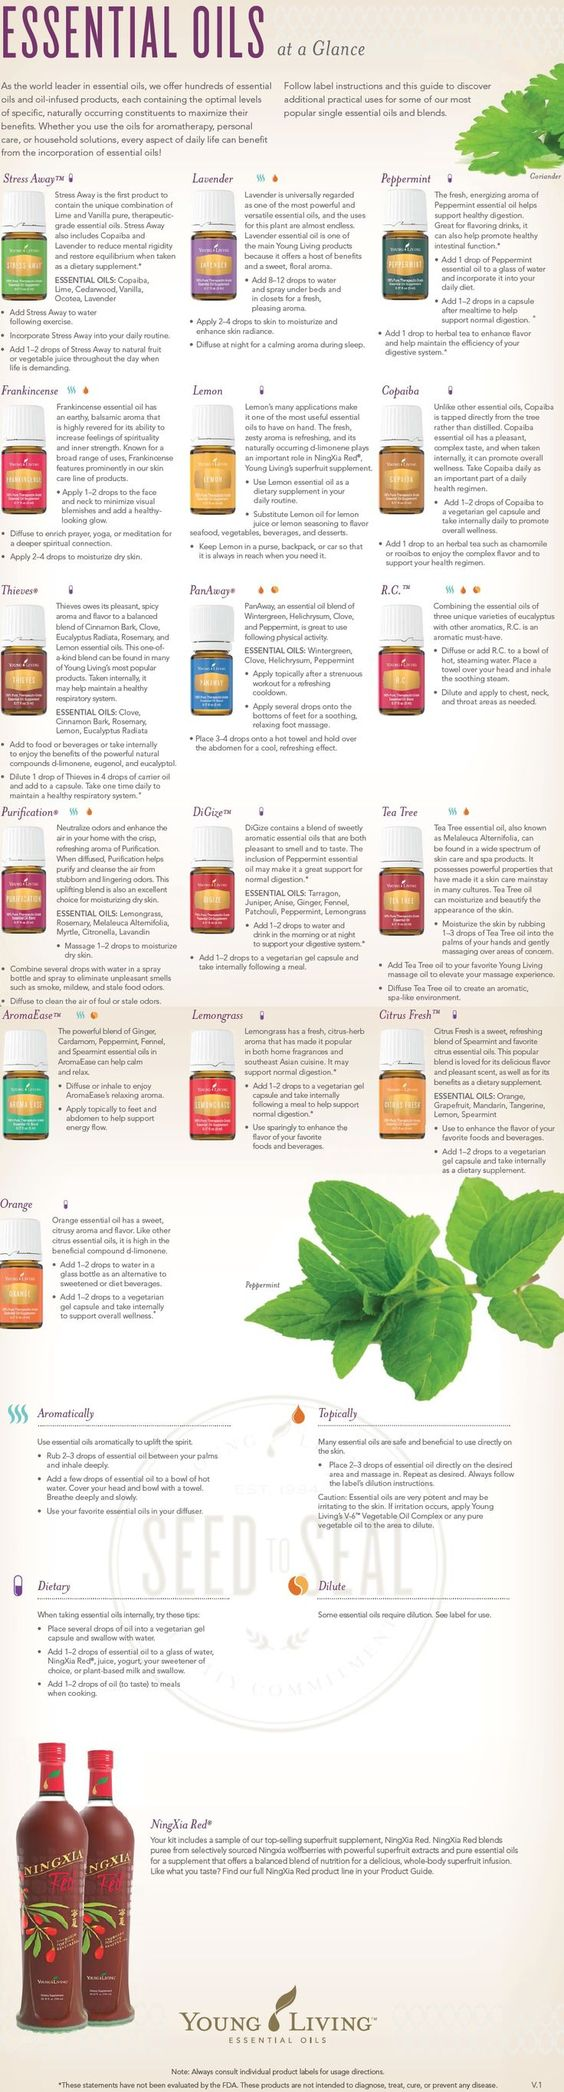 All of these oils come in your Young Living Essential Oils Premium Starter Kit.    Order Yours Today Here: www.NextGenCounseling.com/Young-Living-Oils-for-Wholesale-Prices